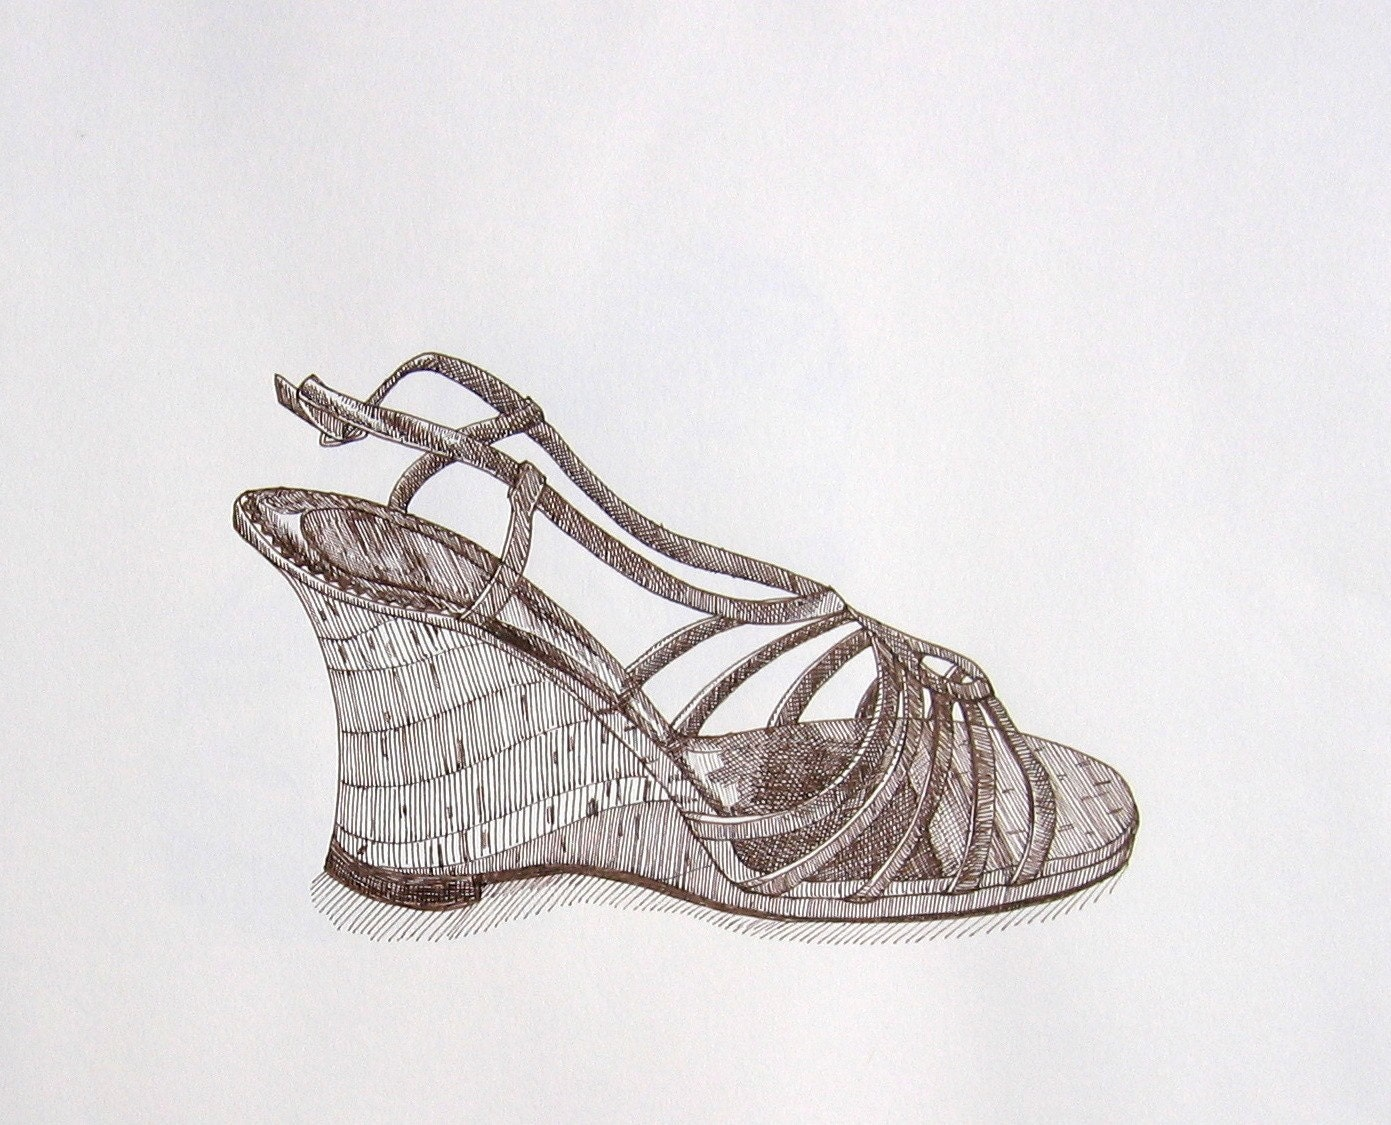 Strappy Sandal - Original Pen and Ink Drawing